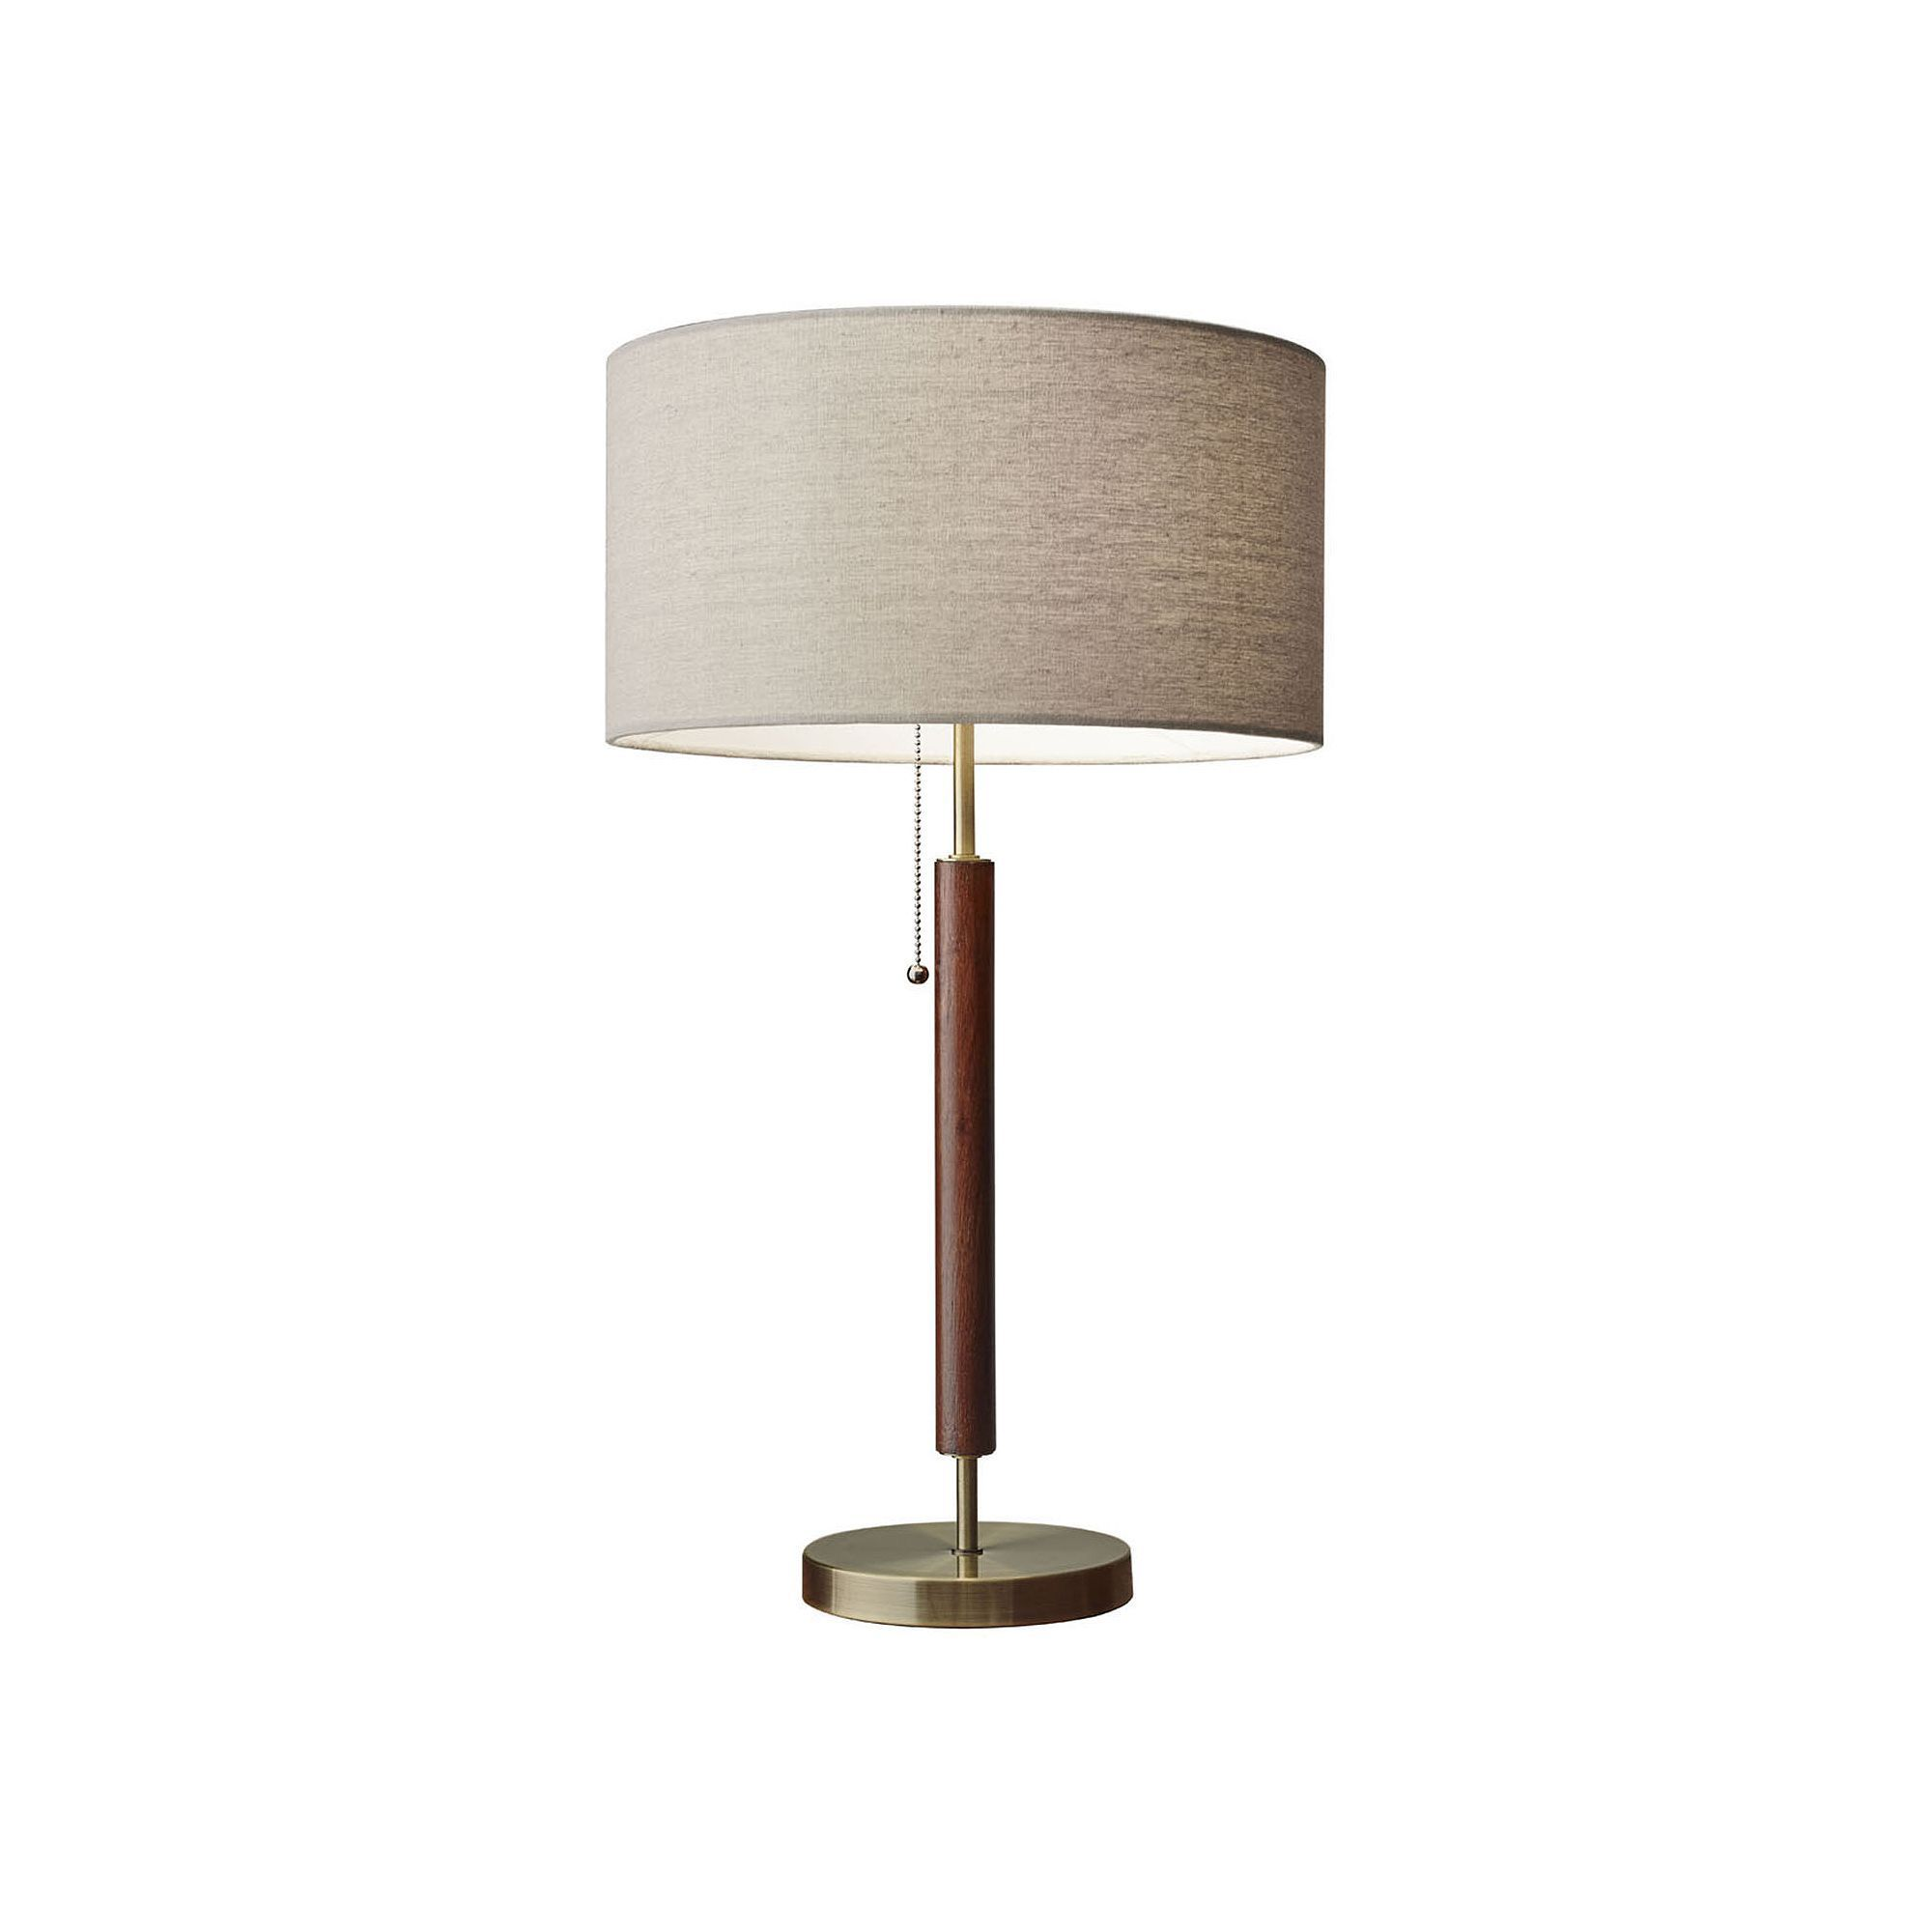 Adesso Hamilton Table Lamp Multicolor Table Lamp Lamp Light Table